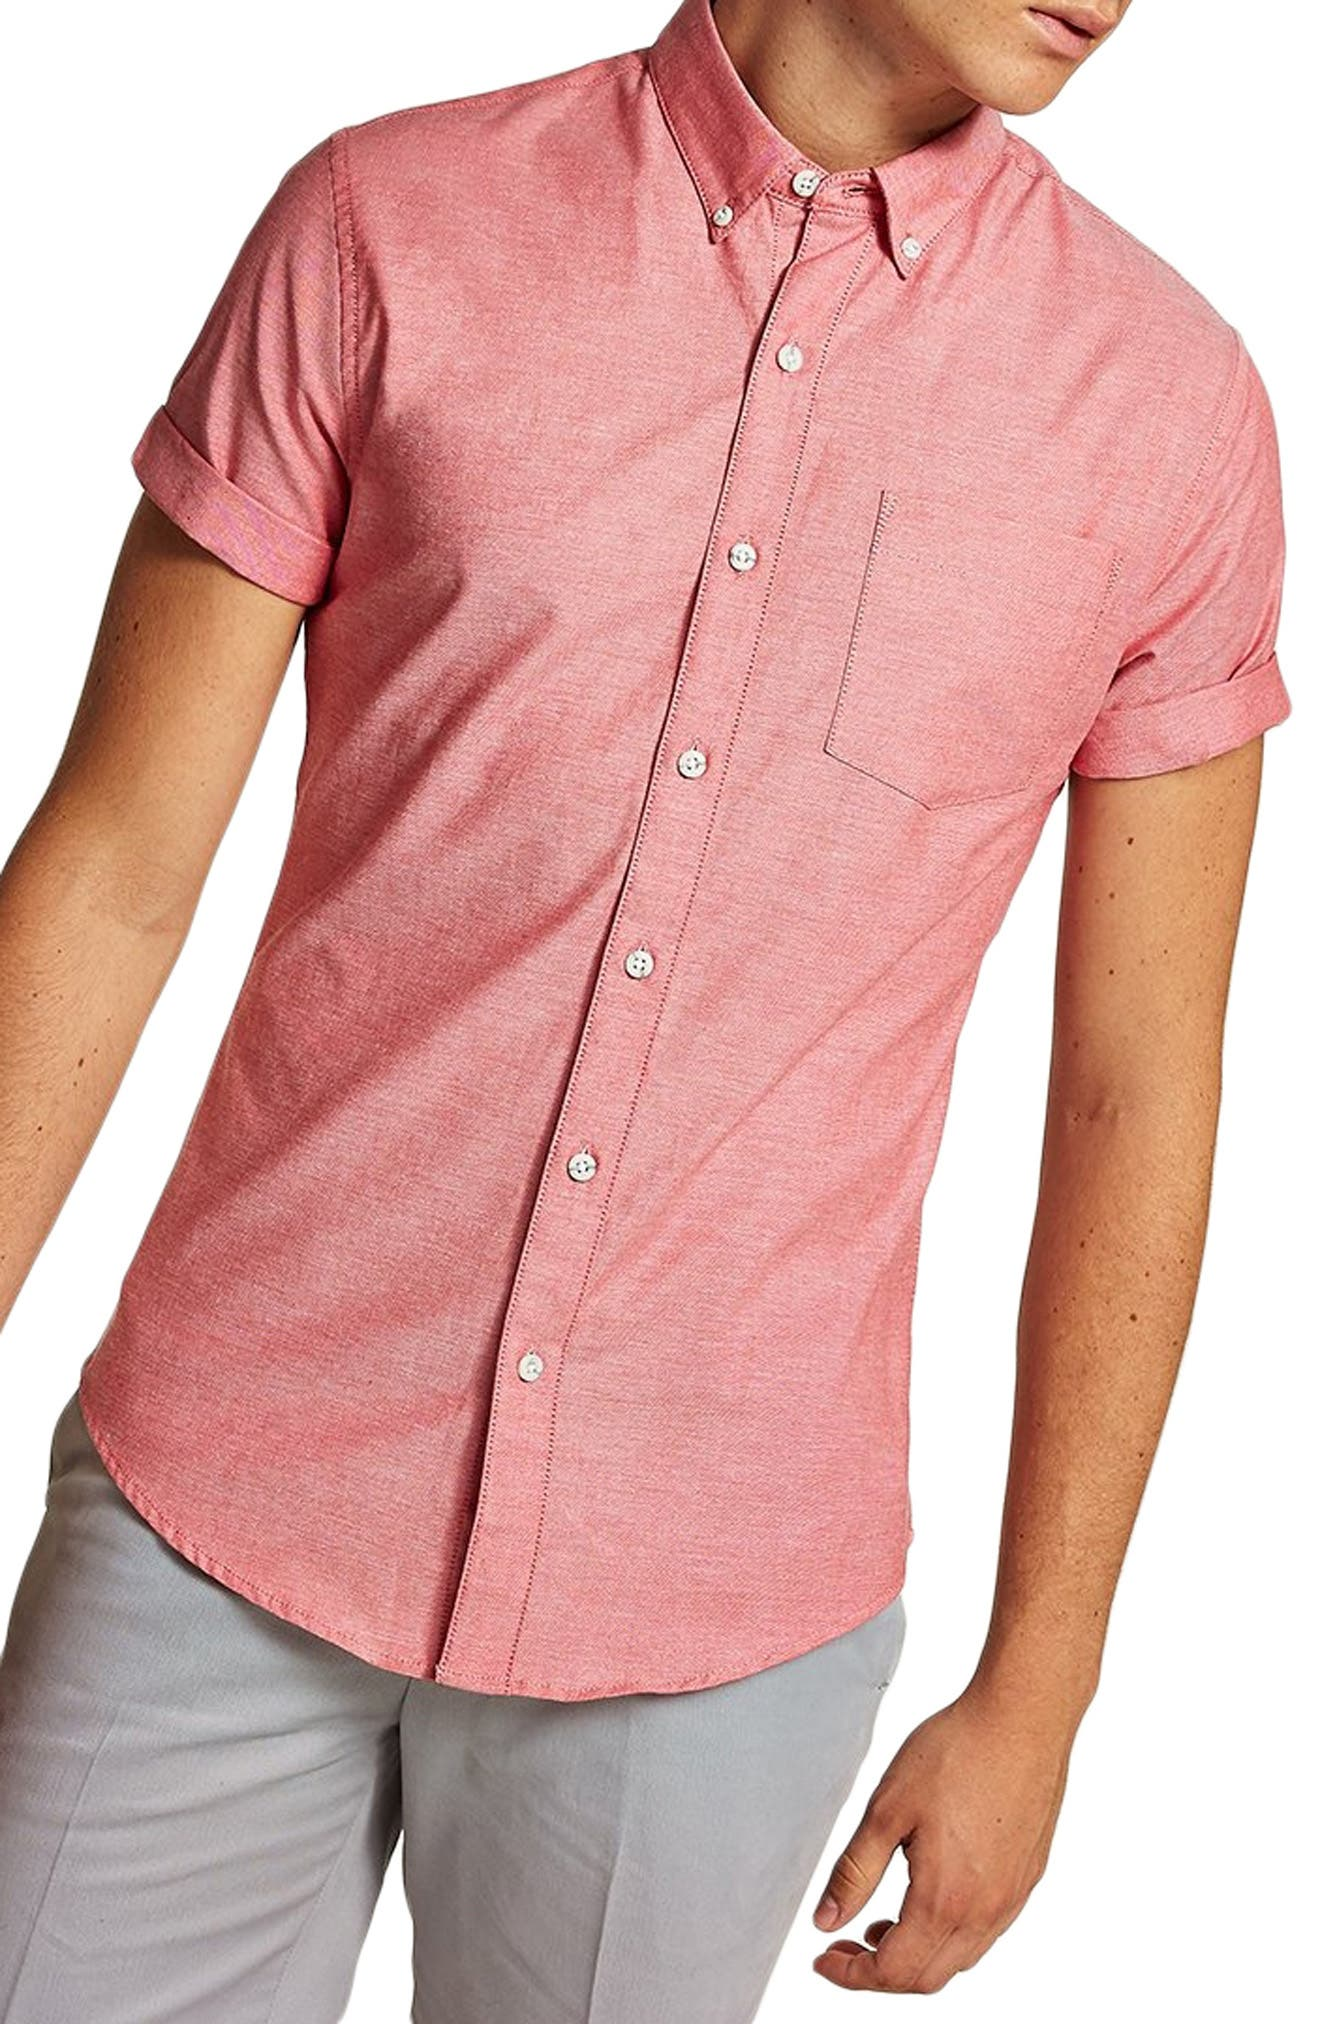 Muscle Fit Oxford Shirt,                             Main thumbnail 1, color,                             RED MULTI